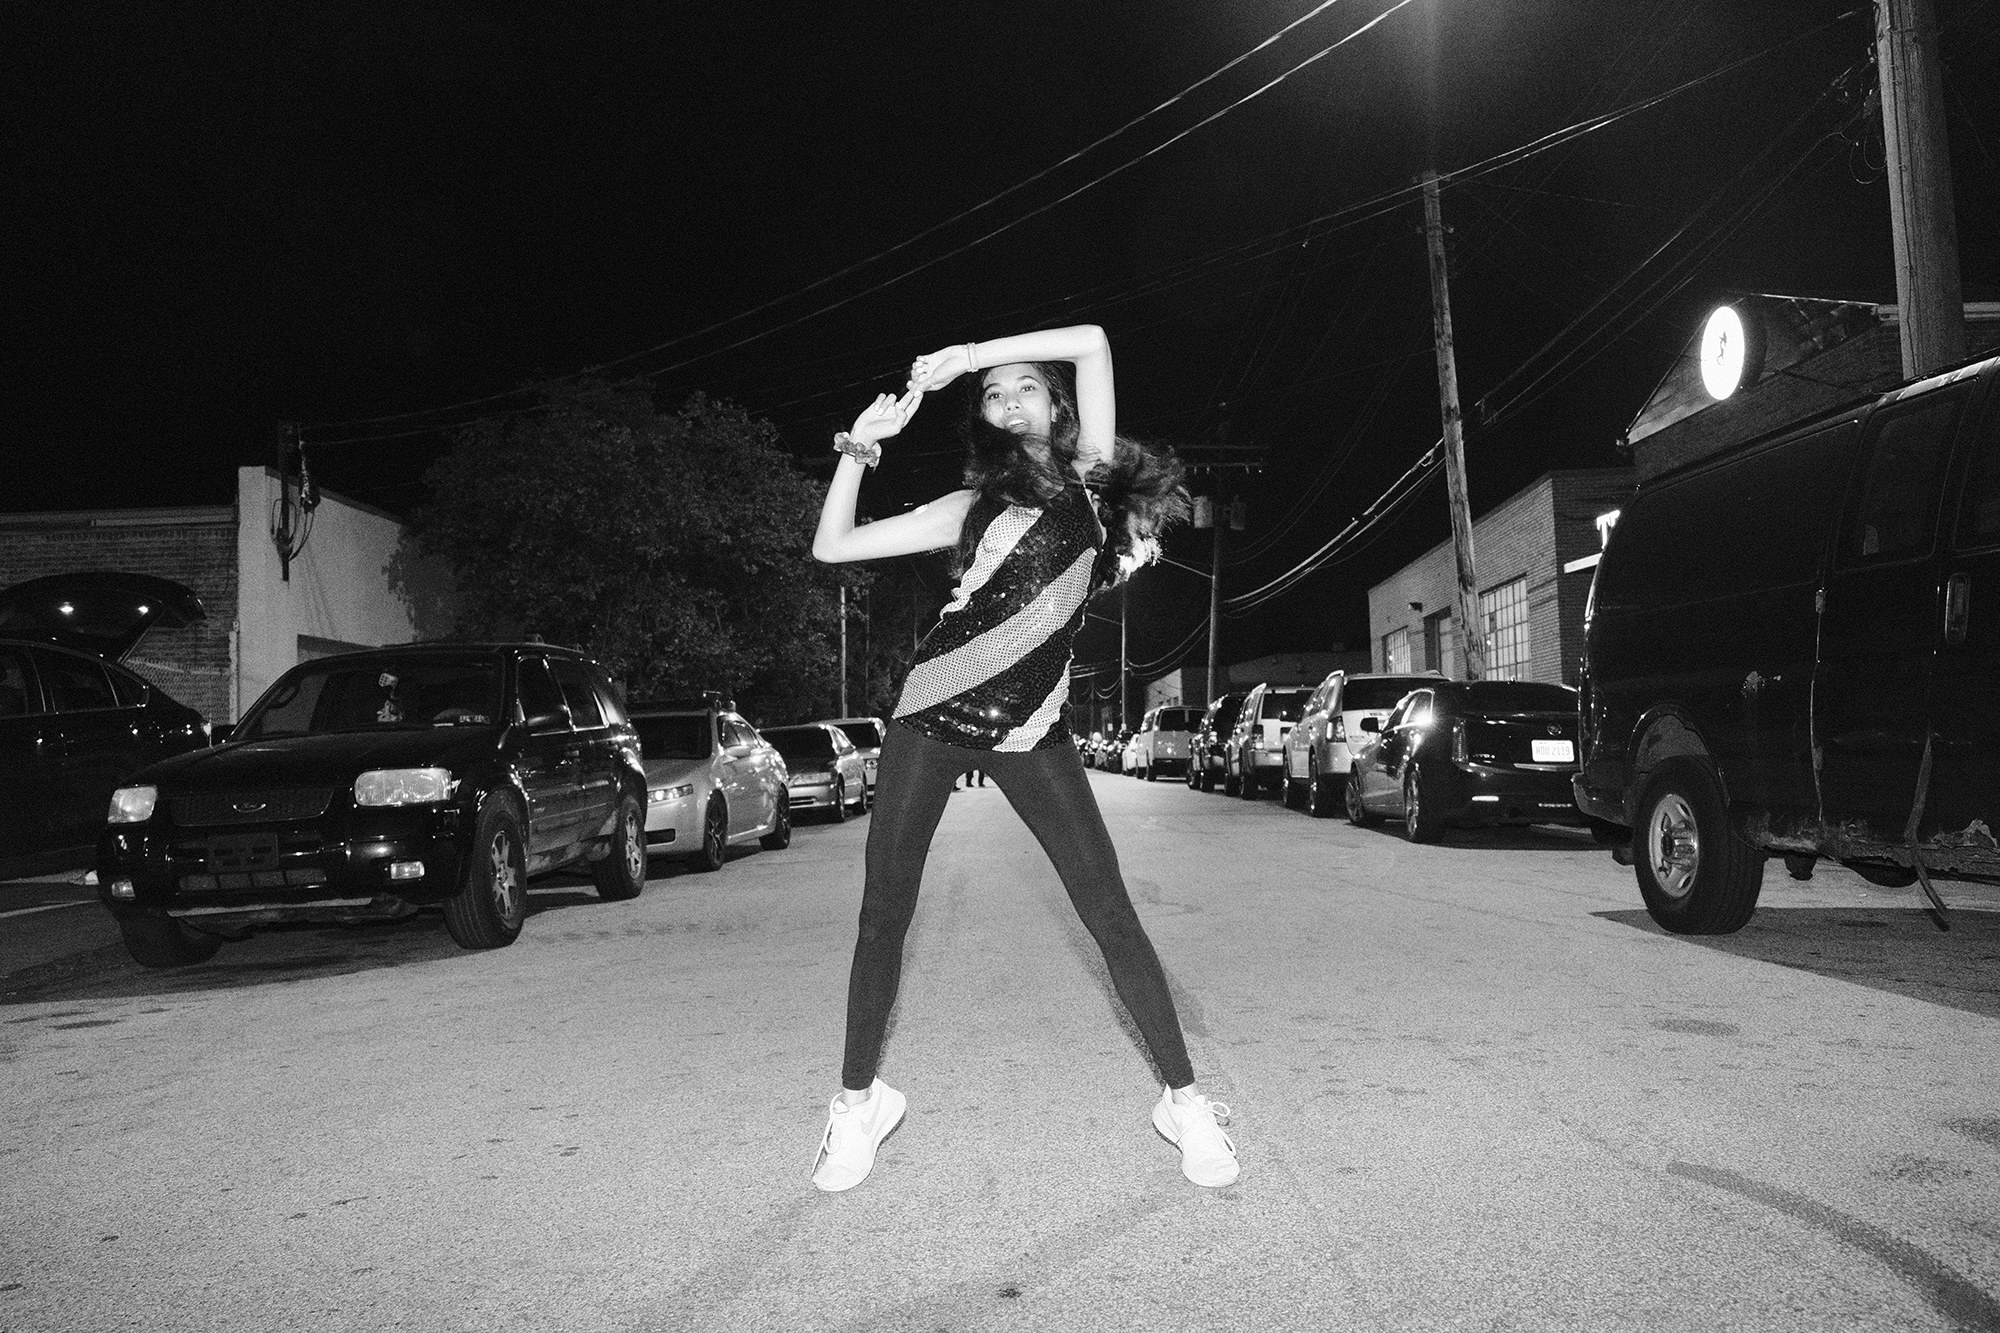 A black-and-white photo of a girl dancing in the street at night